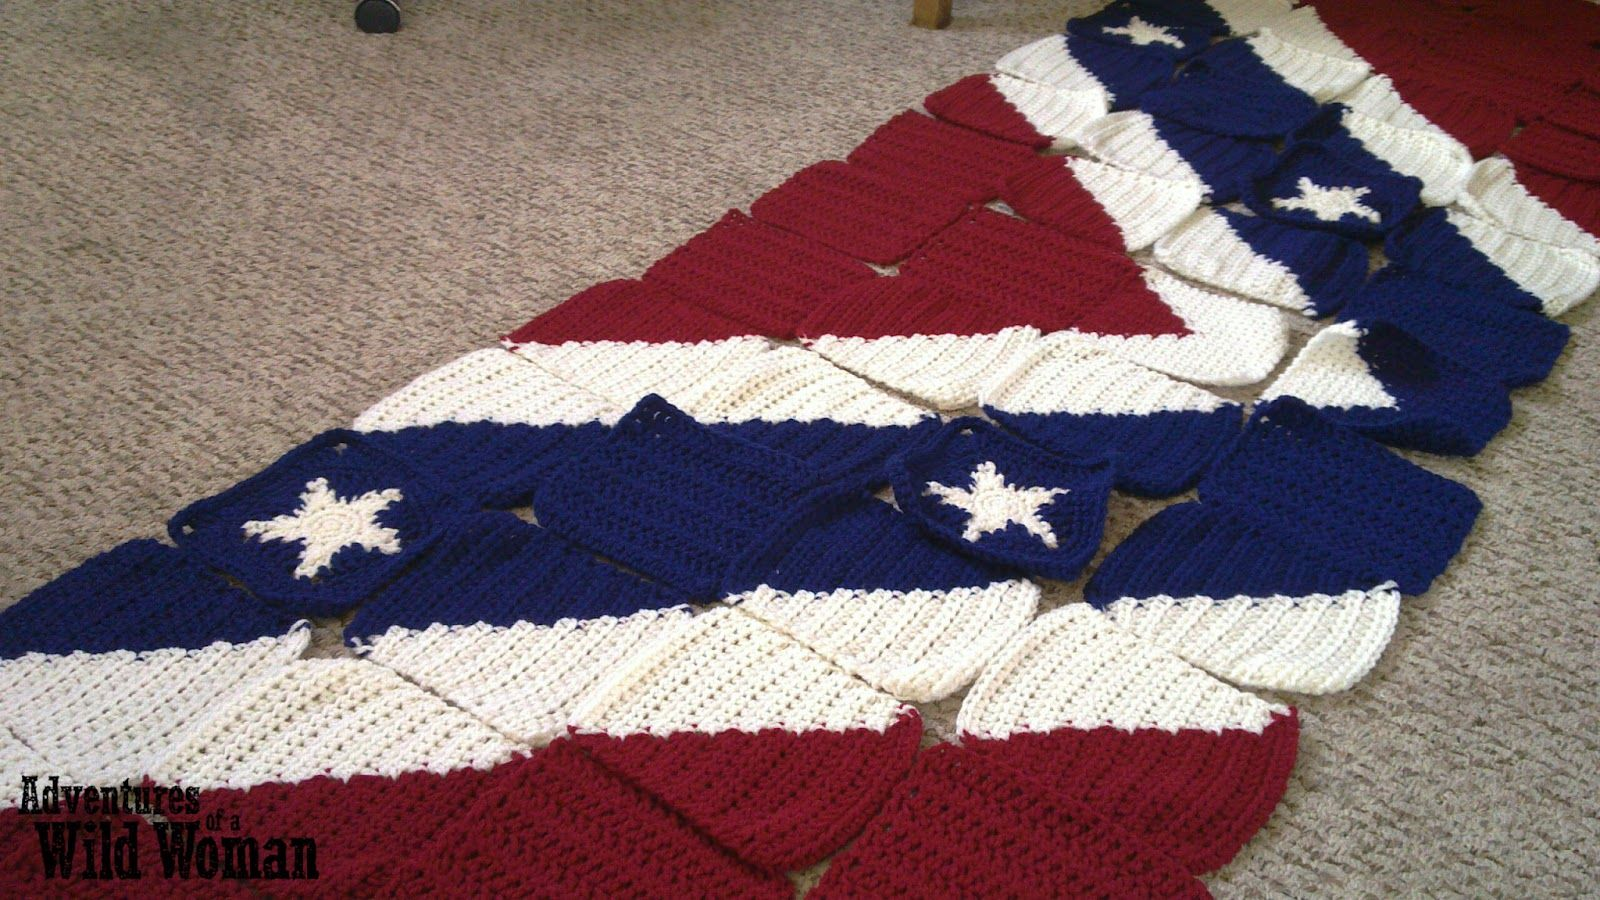 Adventures of a Wild Woman: Crochet Confederate Flag Blanket ...